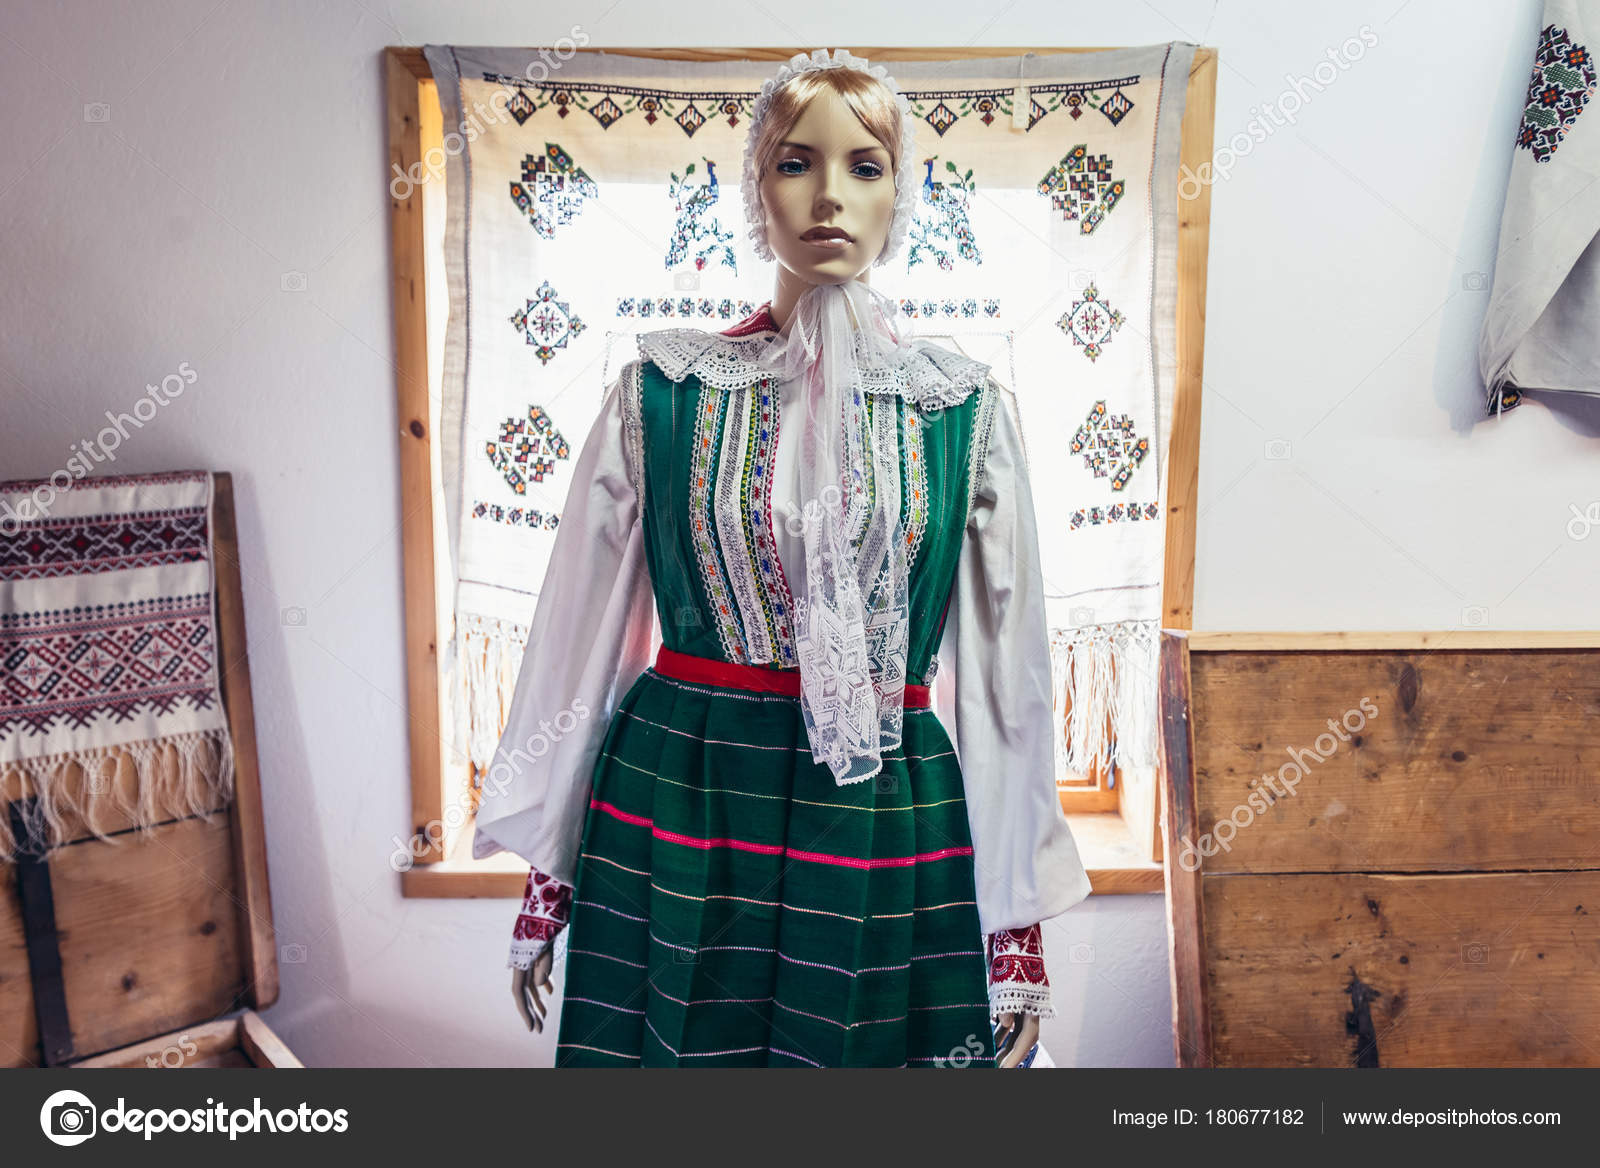 https://st3.depositphotos.com/1037718/18067/i/1600/depositphotos_180677182-stock-photo-polish-folk-costume.jpg